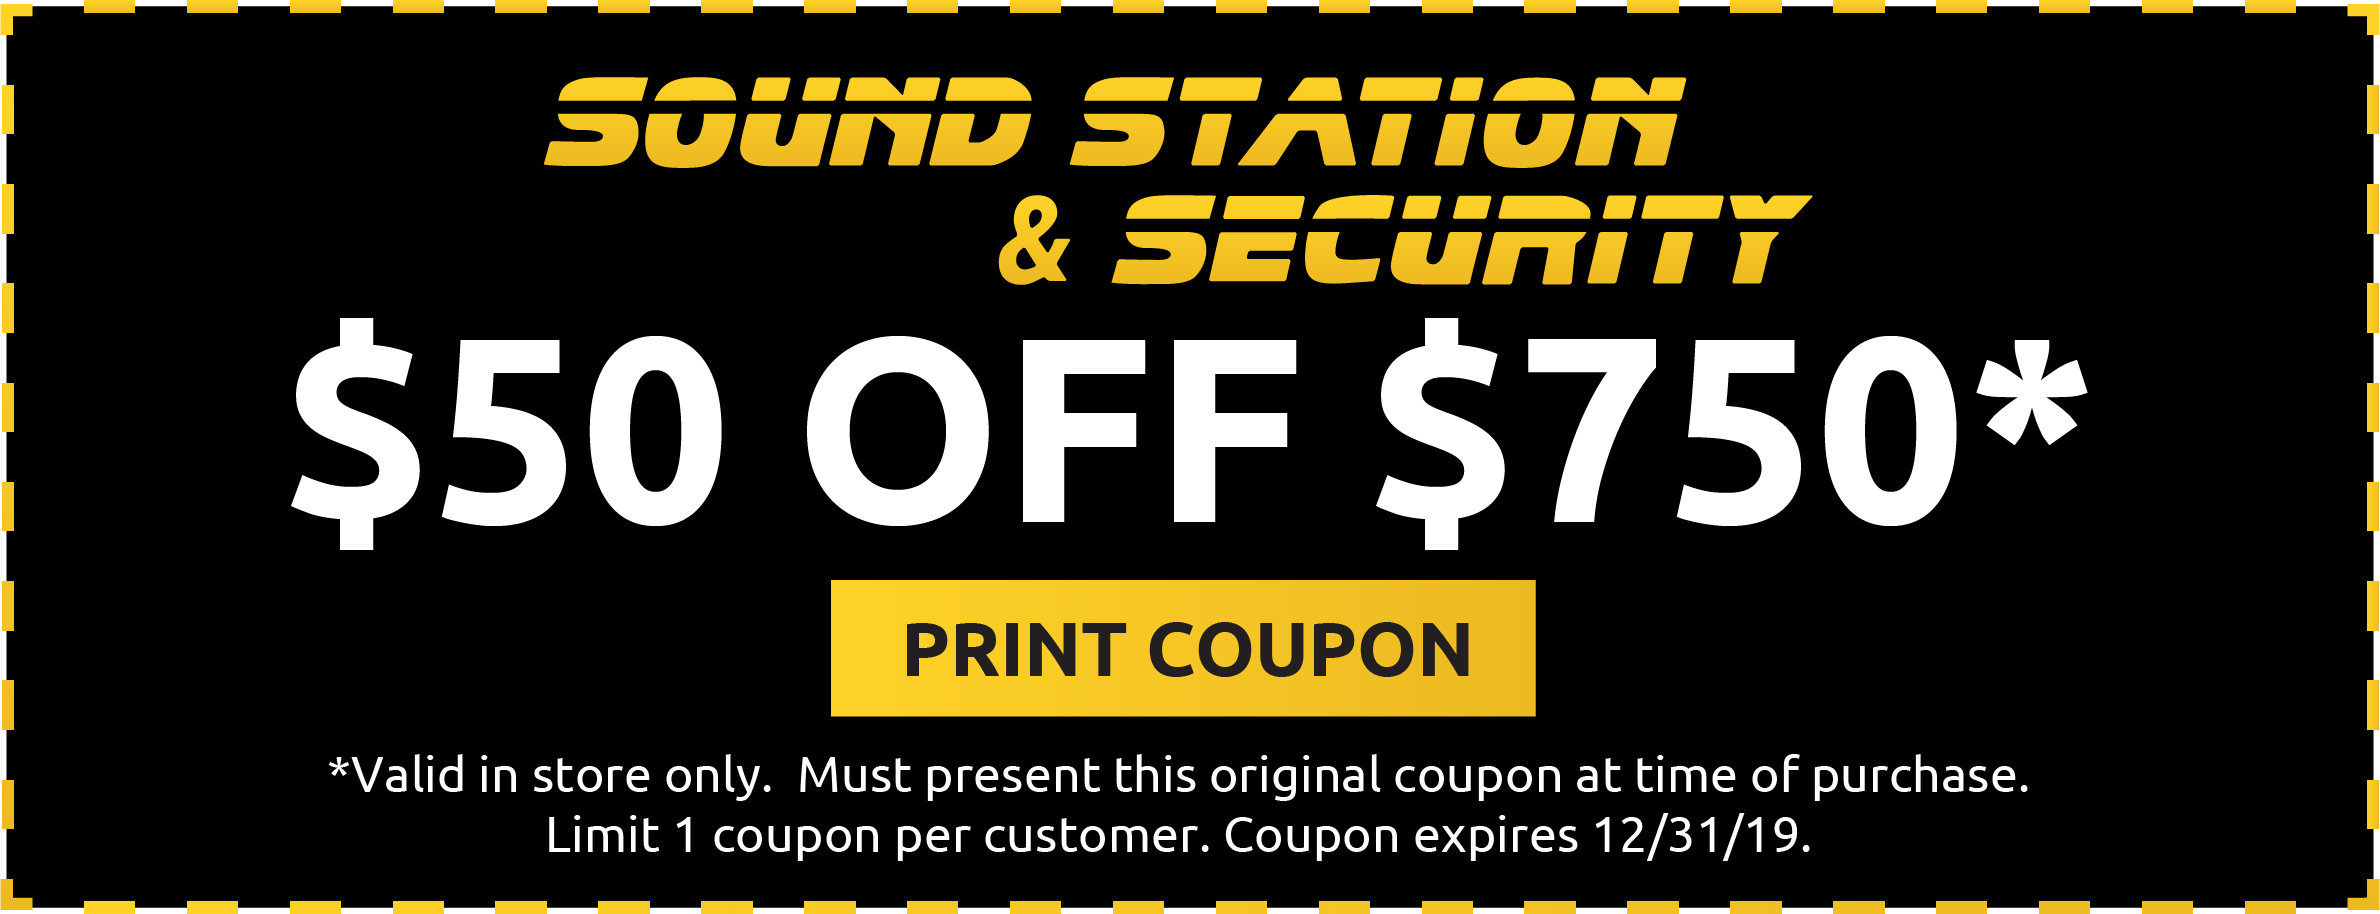 Sound Station & Security Coupon